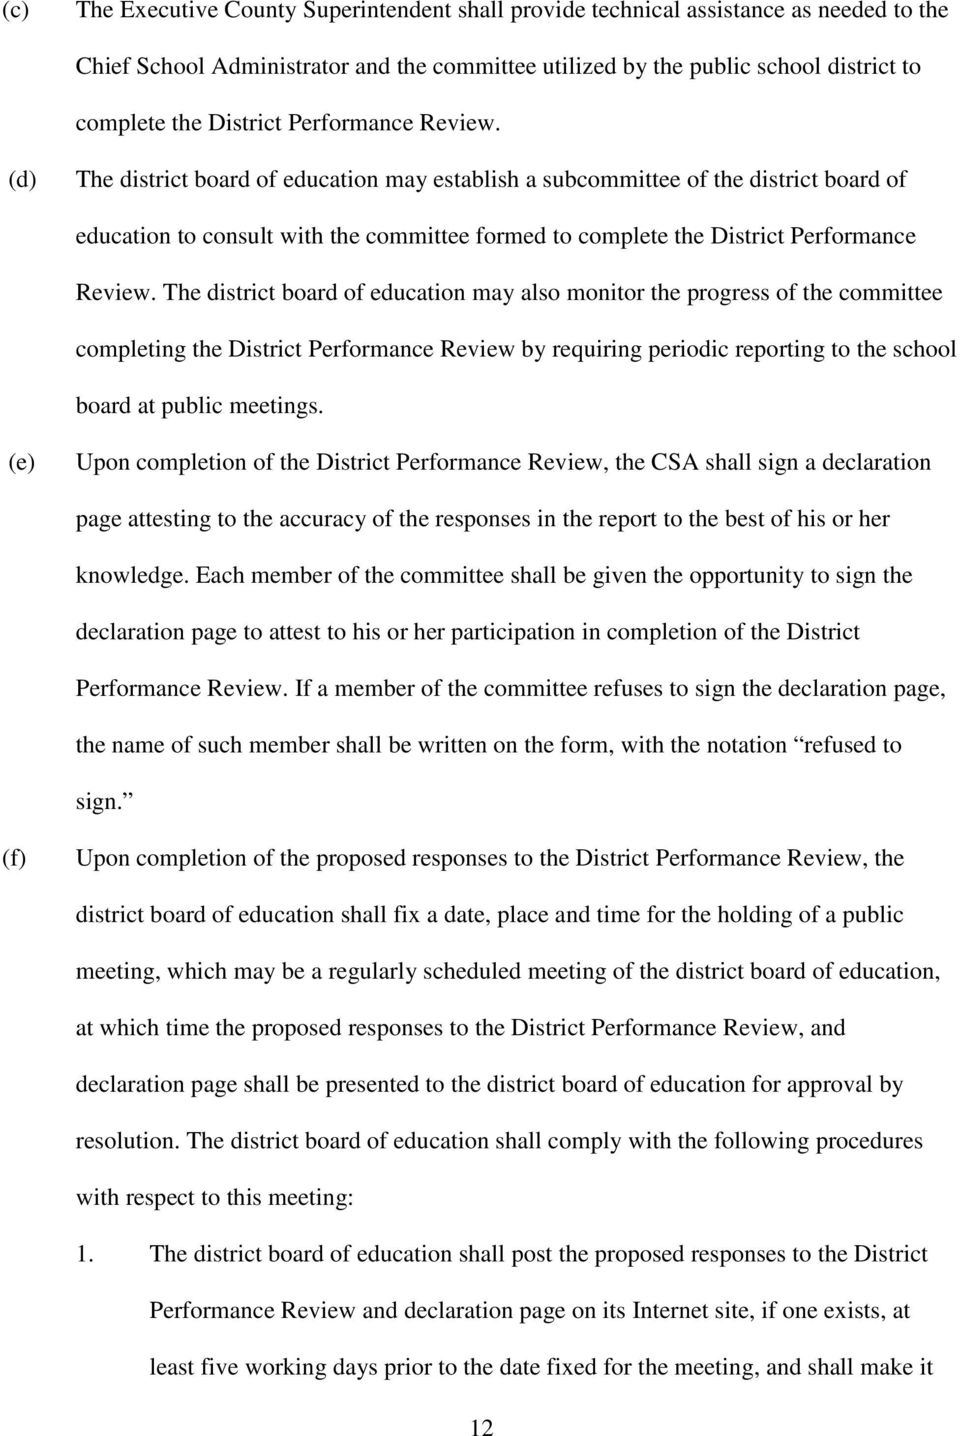 (d) The district board of education may establish a subcommittee of the district board of education to consult with the committee formed to complete the  The district board of education may also